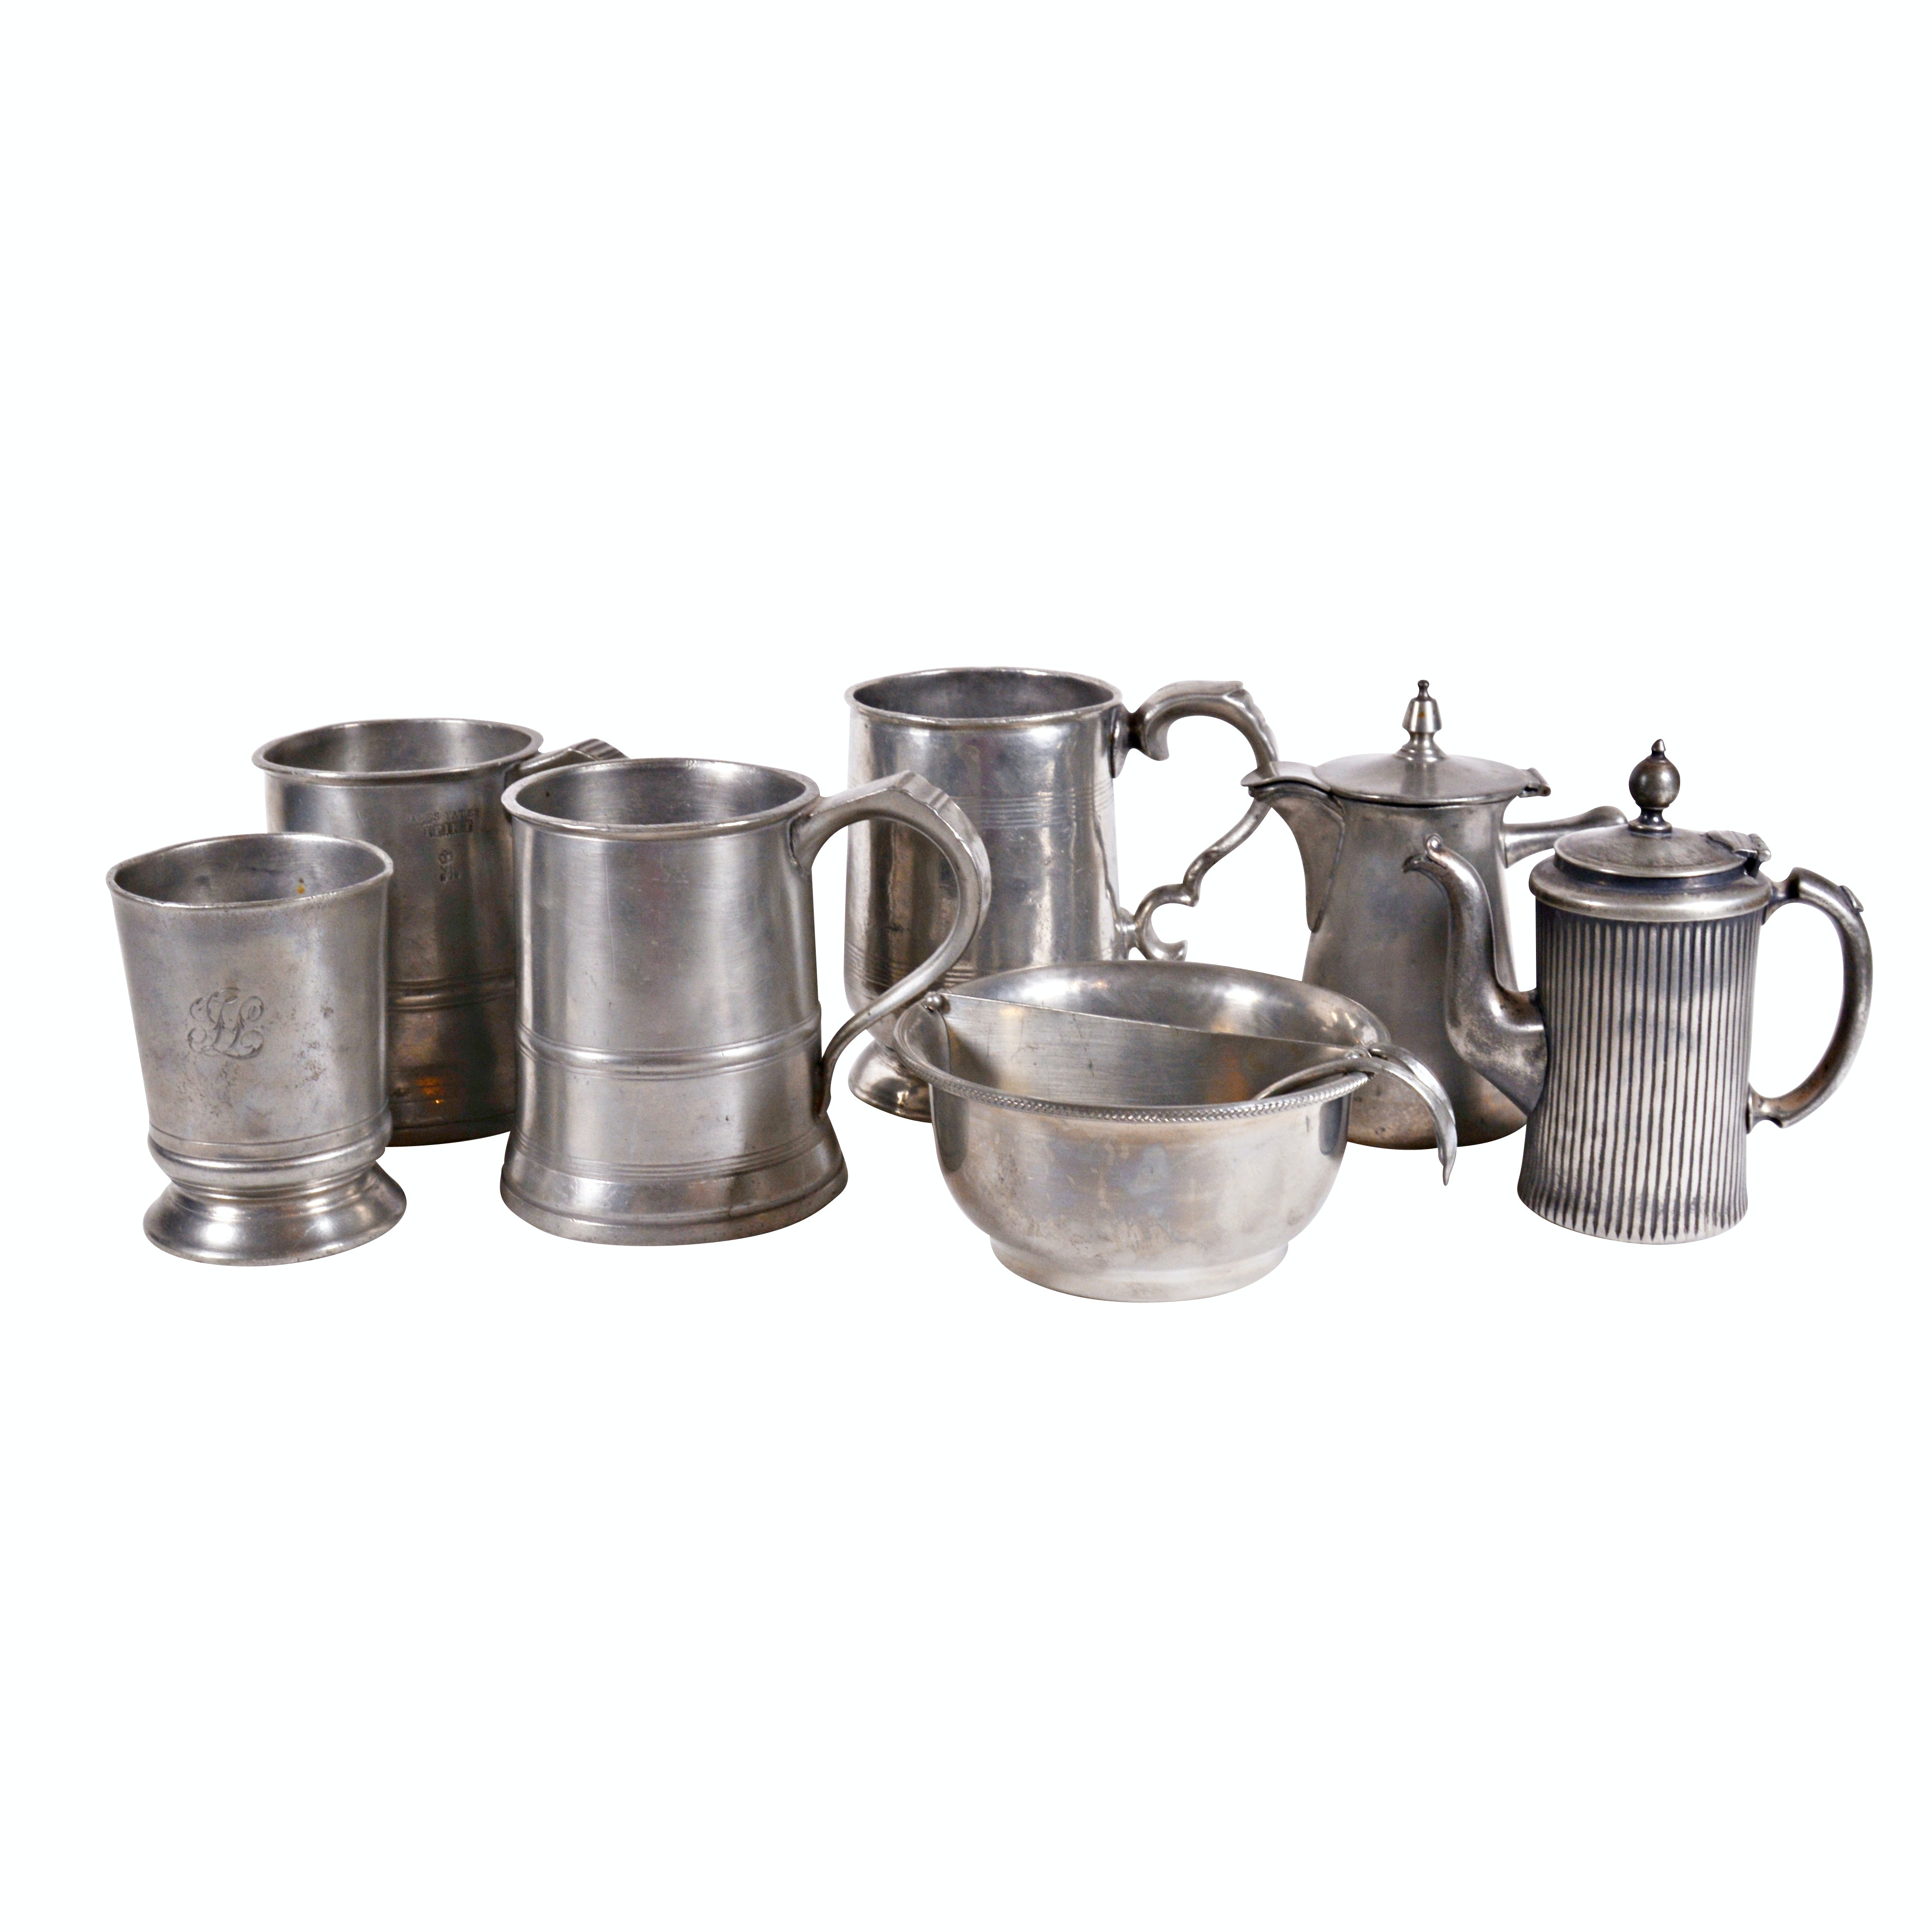 Antique  James Yates Tankards With Vintage Pewter and Silver Plate Tableware